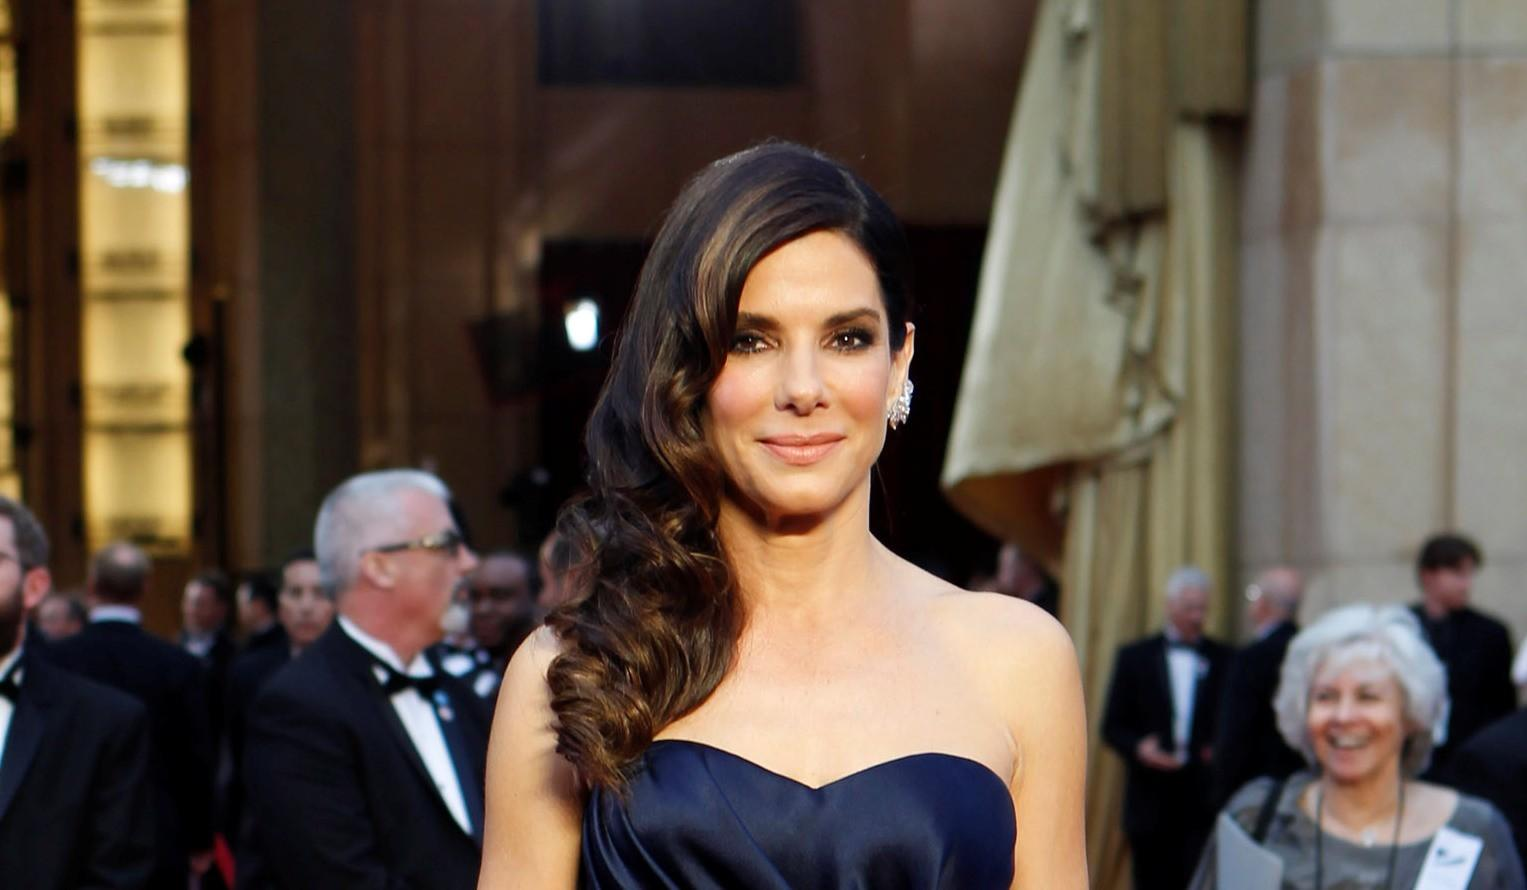 Sandra Bullock donated $1 million to the American Red Cross for storm relief. (Wally Skalij / Los Angeles Times)